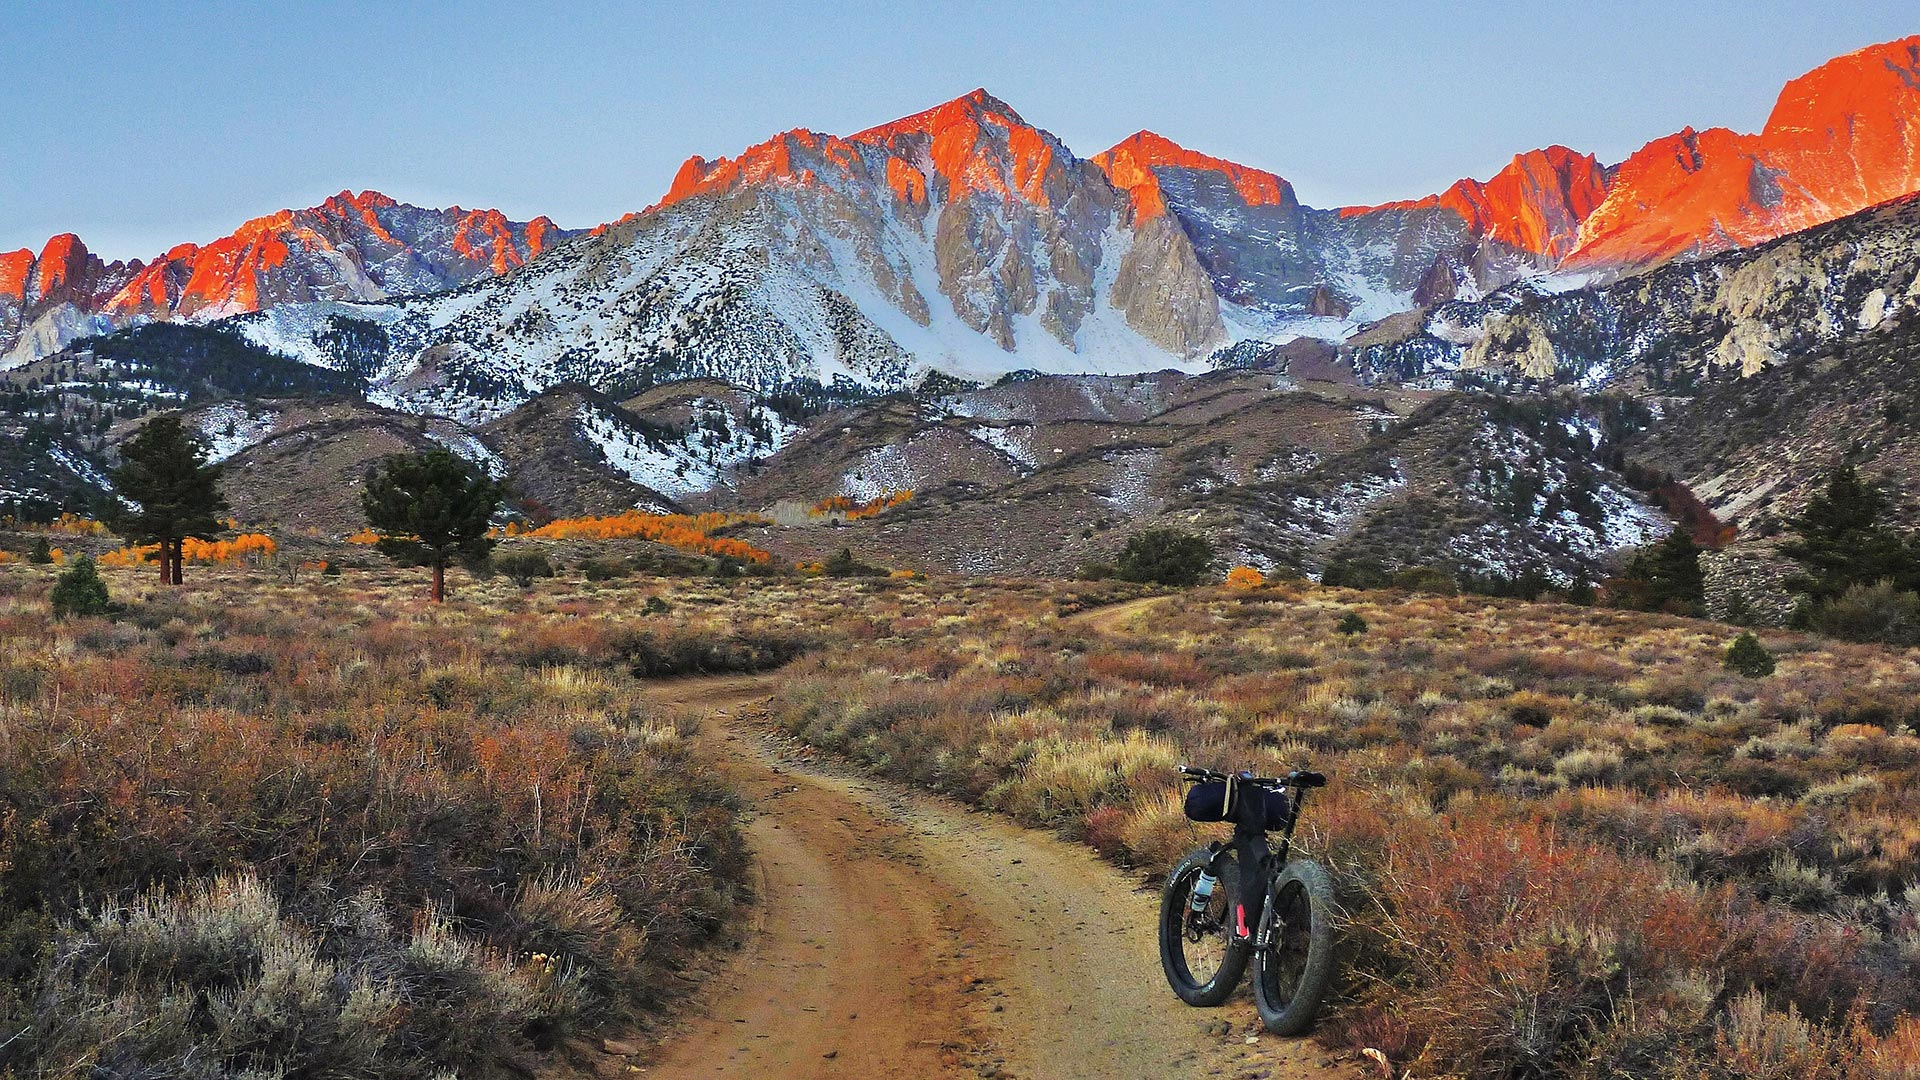 Wallpaper Wednesday – Bloody Teeth of the Sierras - photo from Tom McDonald